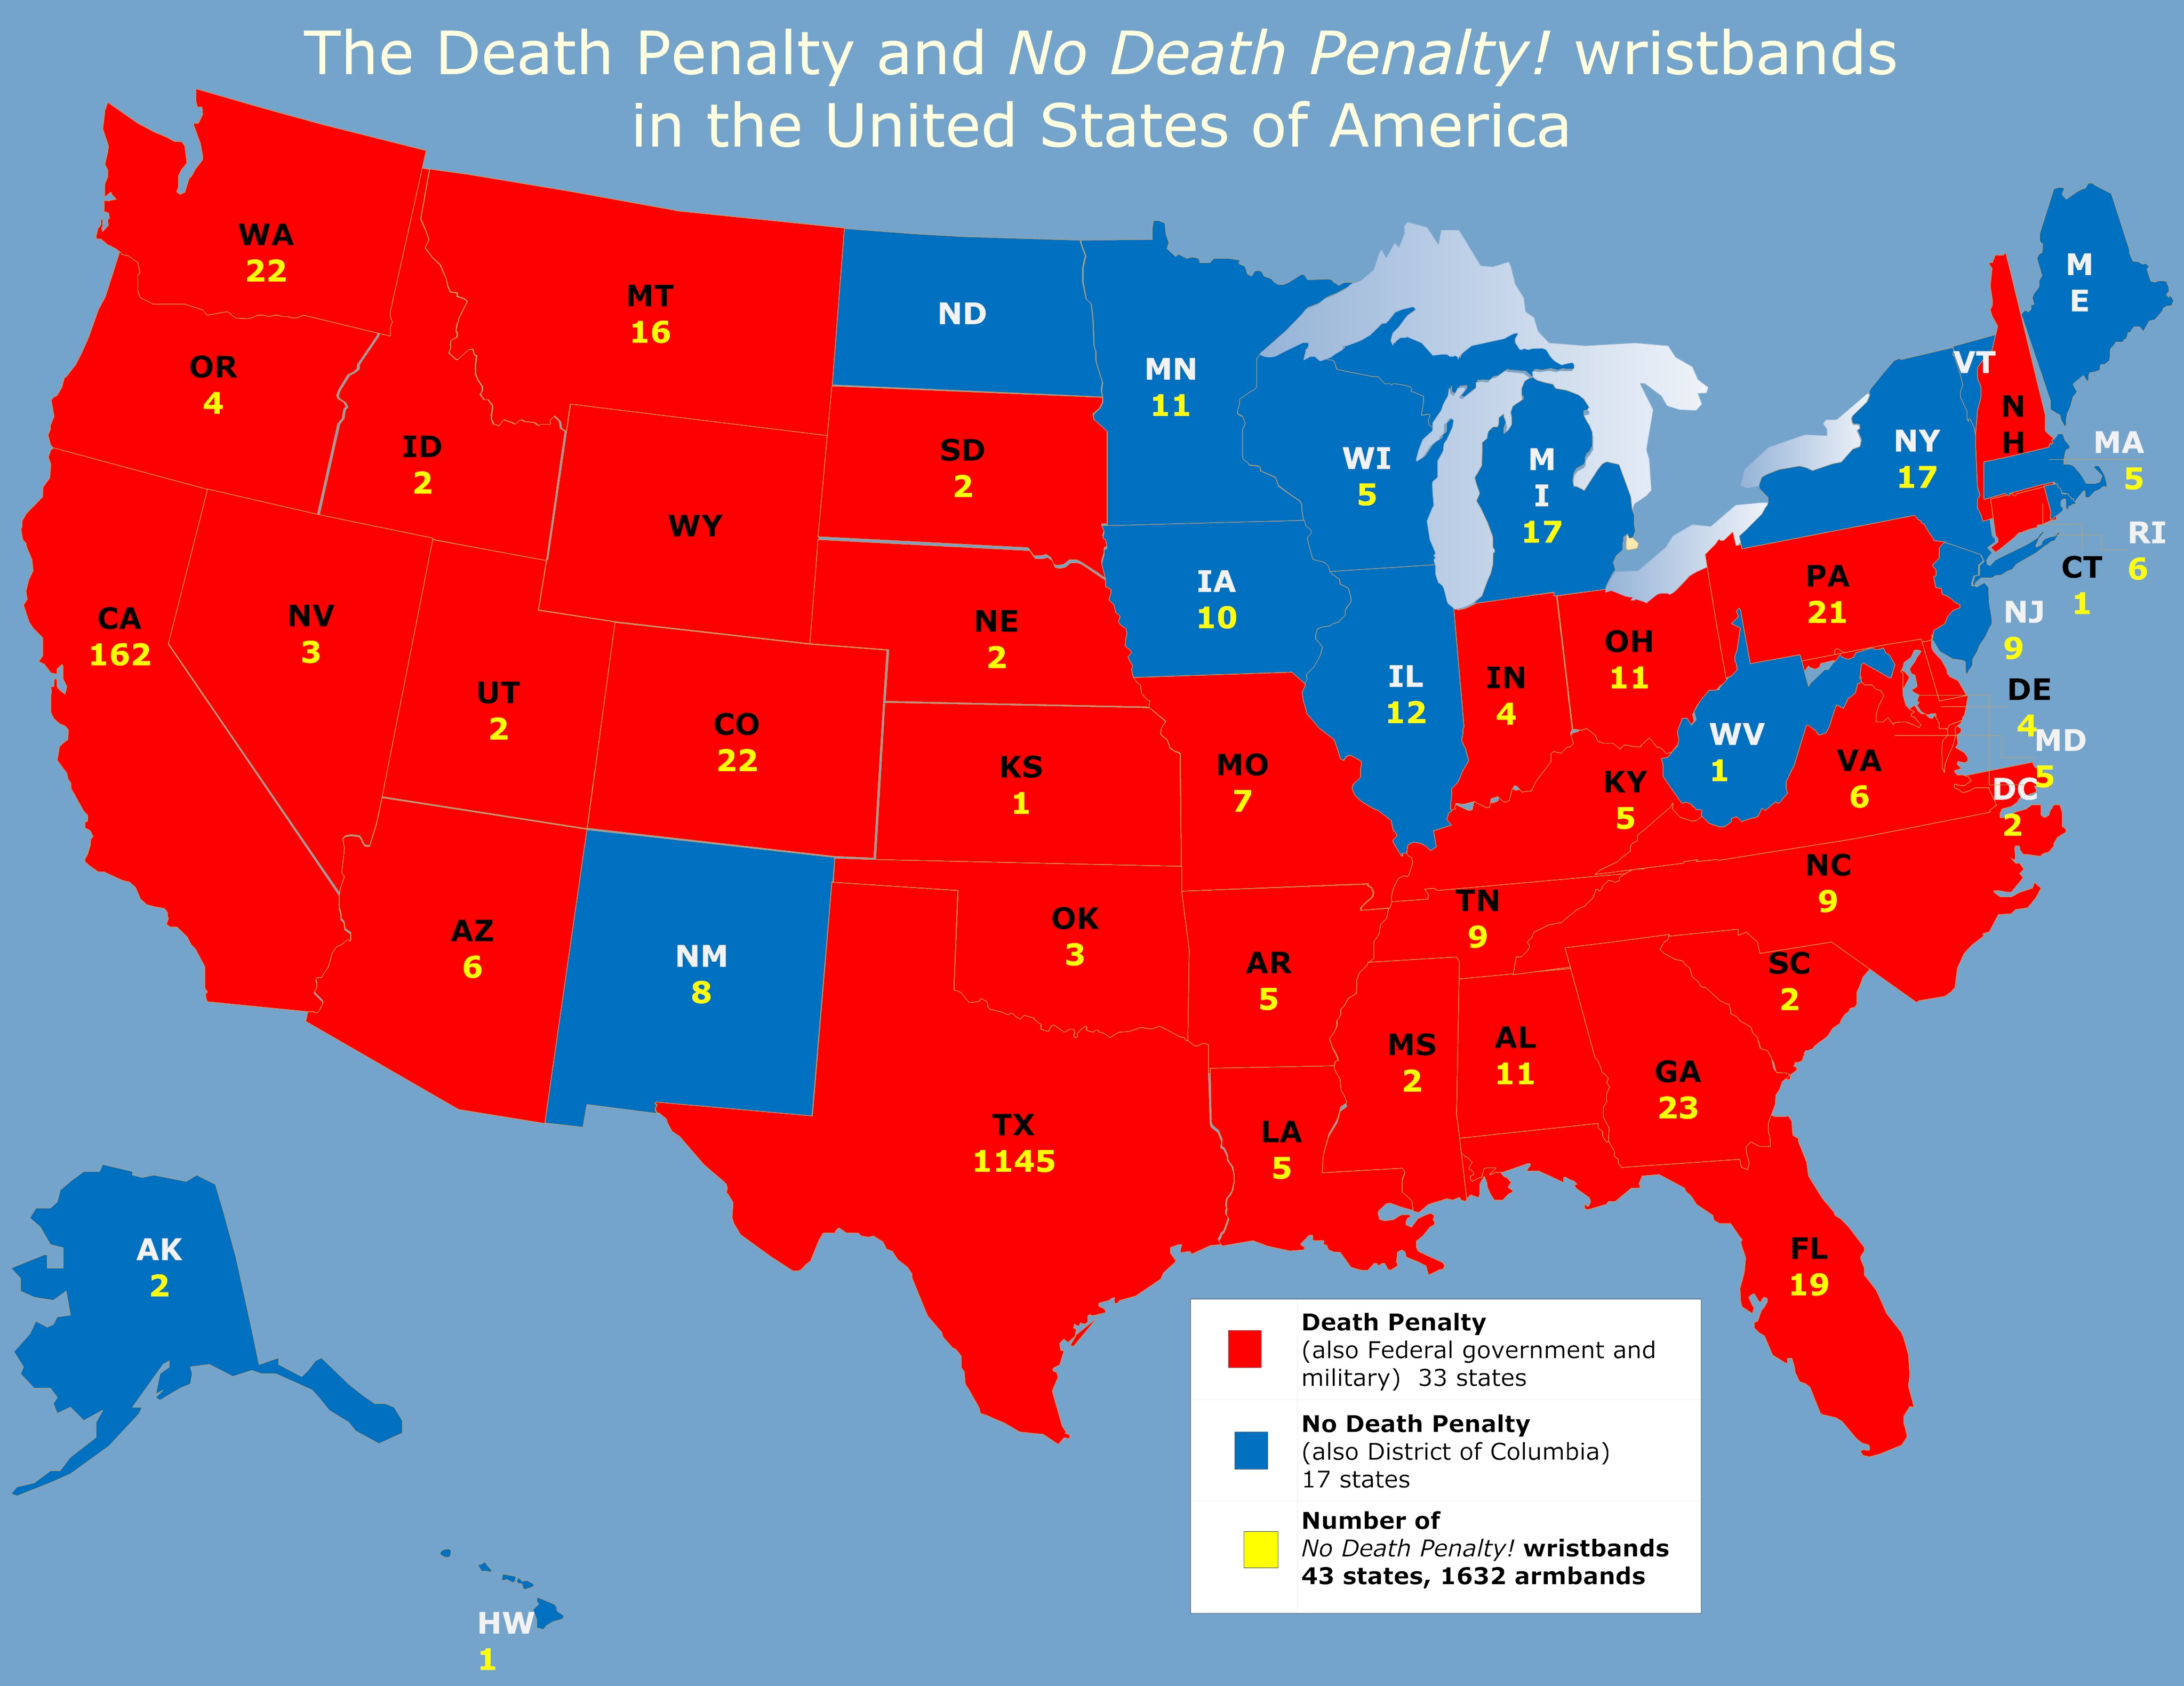 The importance of the issue of the death penalty in the united states